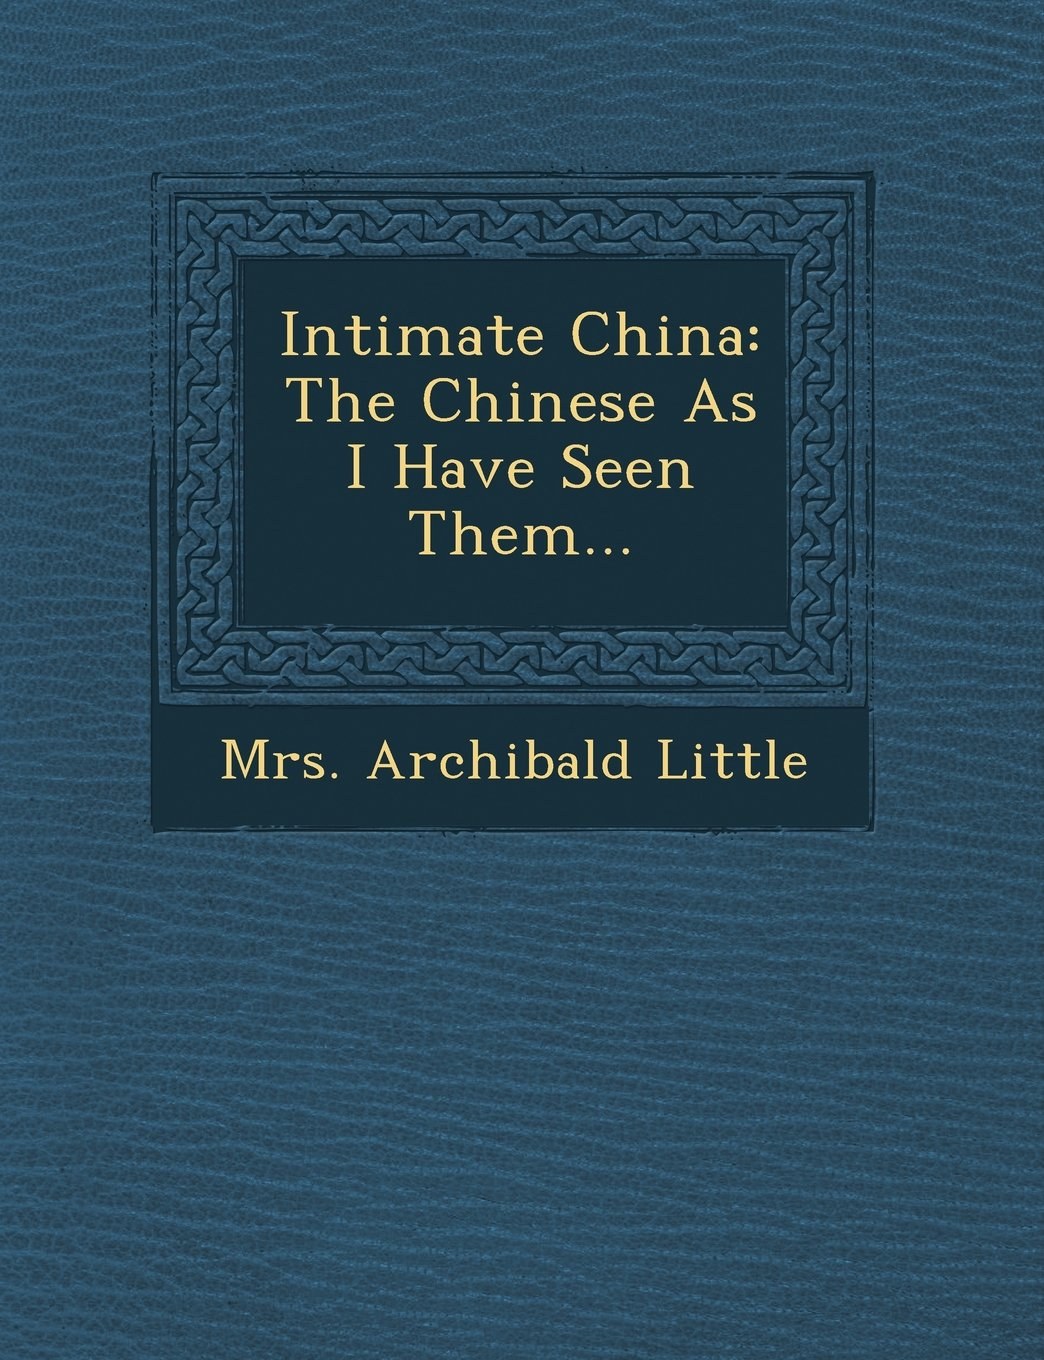 Intimate China: The Chinese As I Have Seen Them... pdf